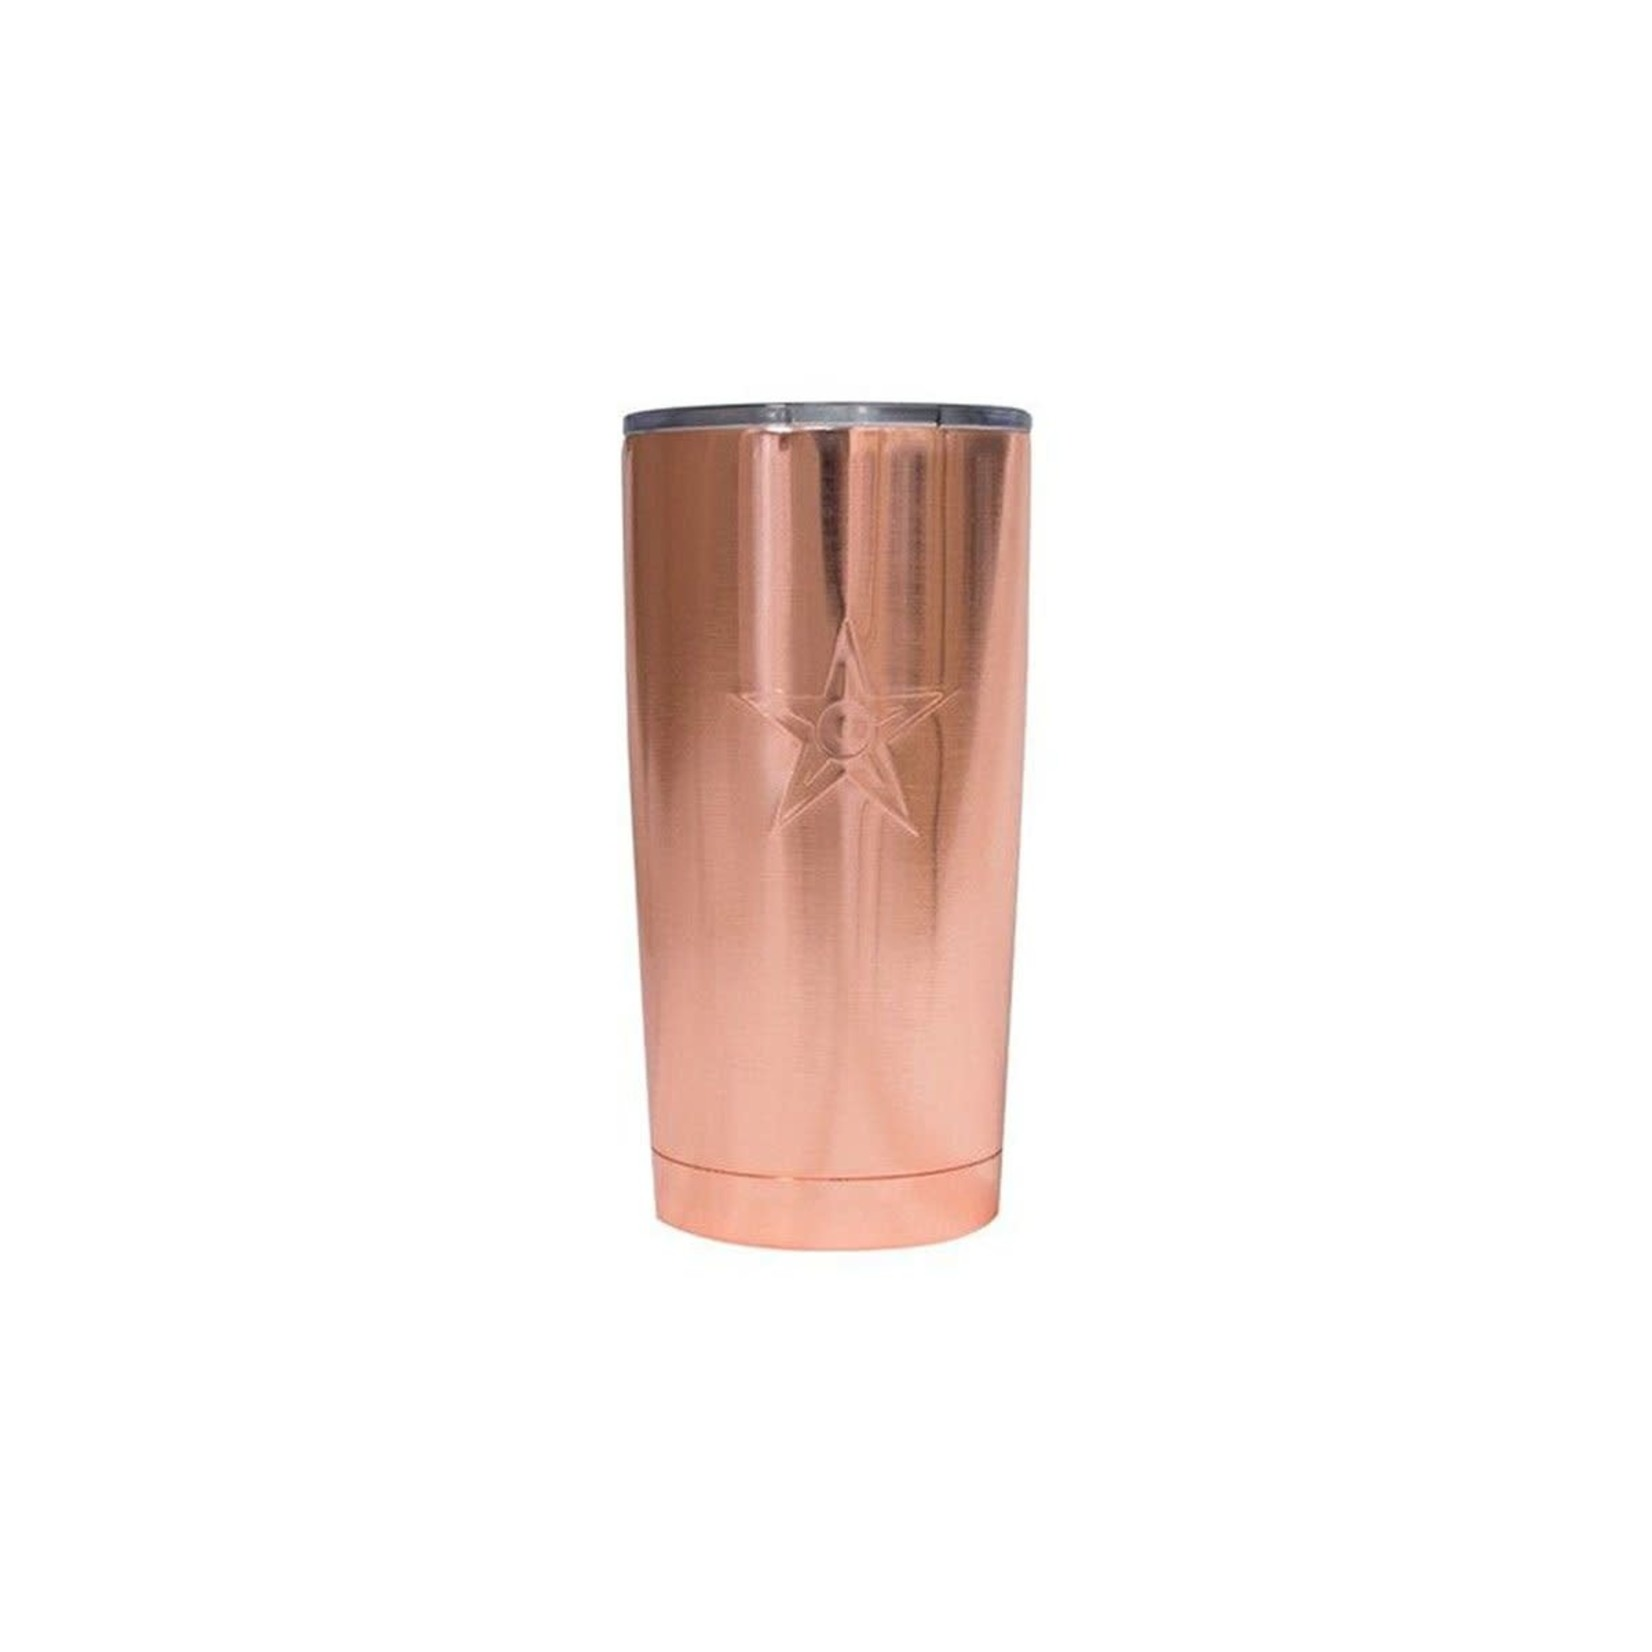 Canyon Coolers Canyon Coolers 20oz Copper Insulated Tumbler